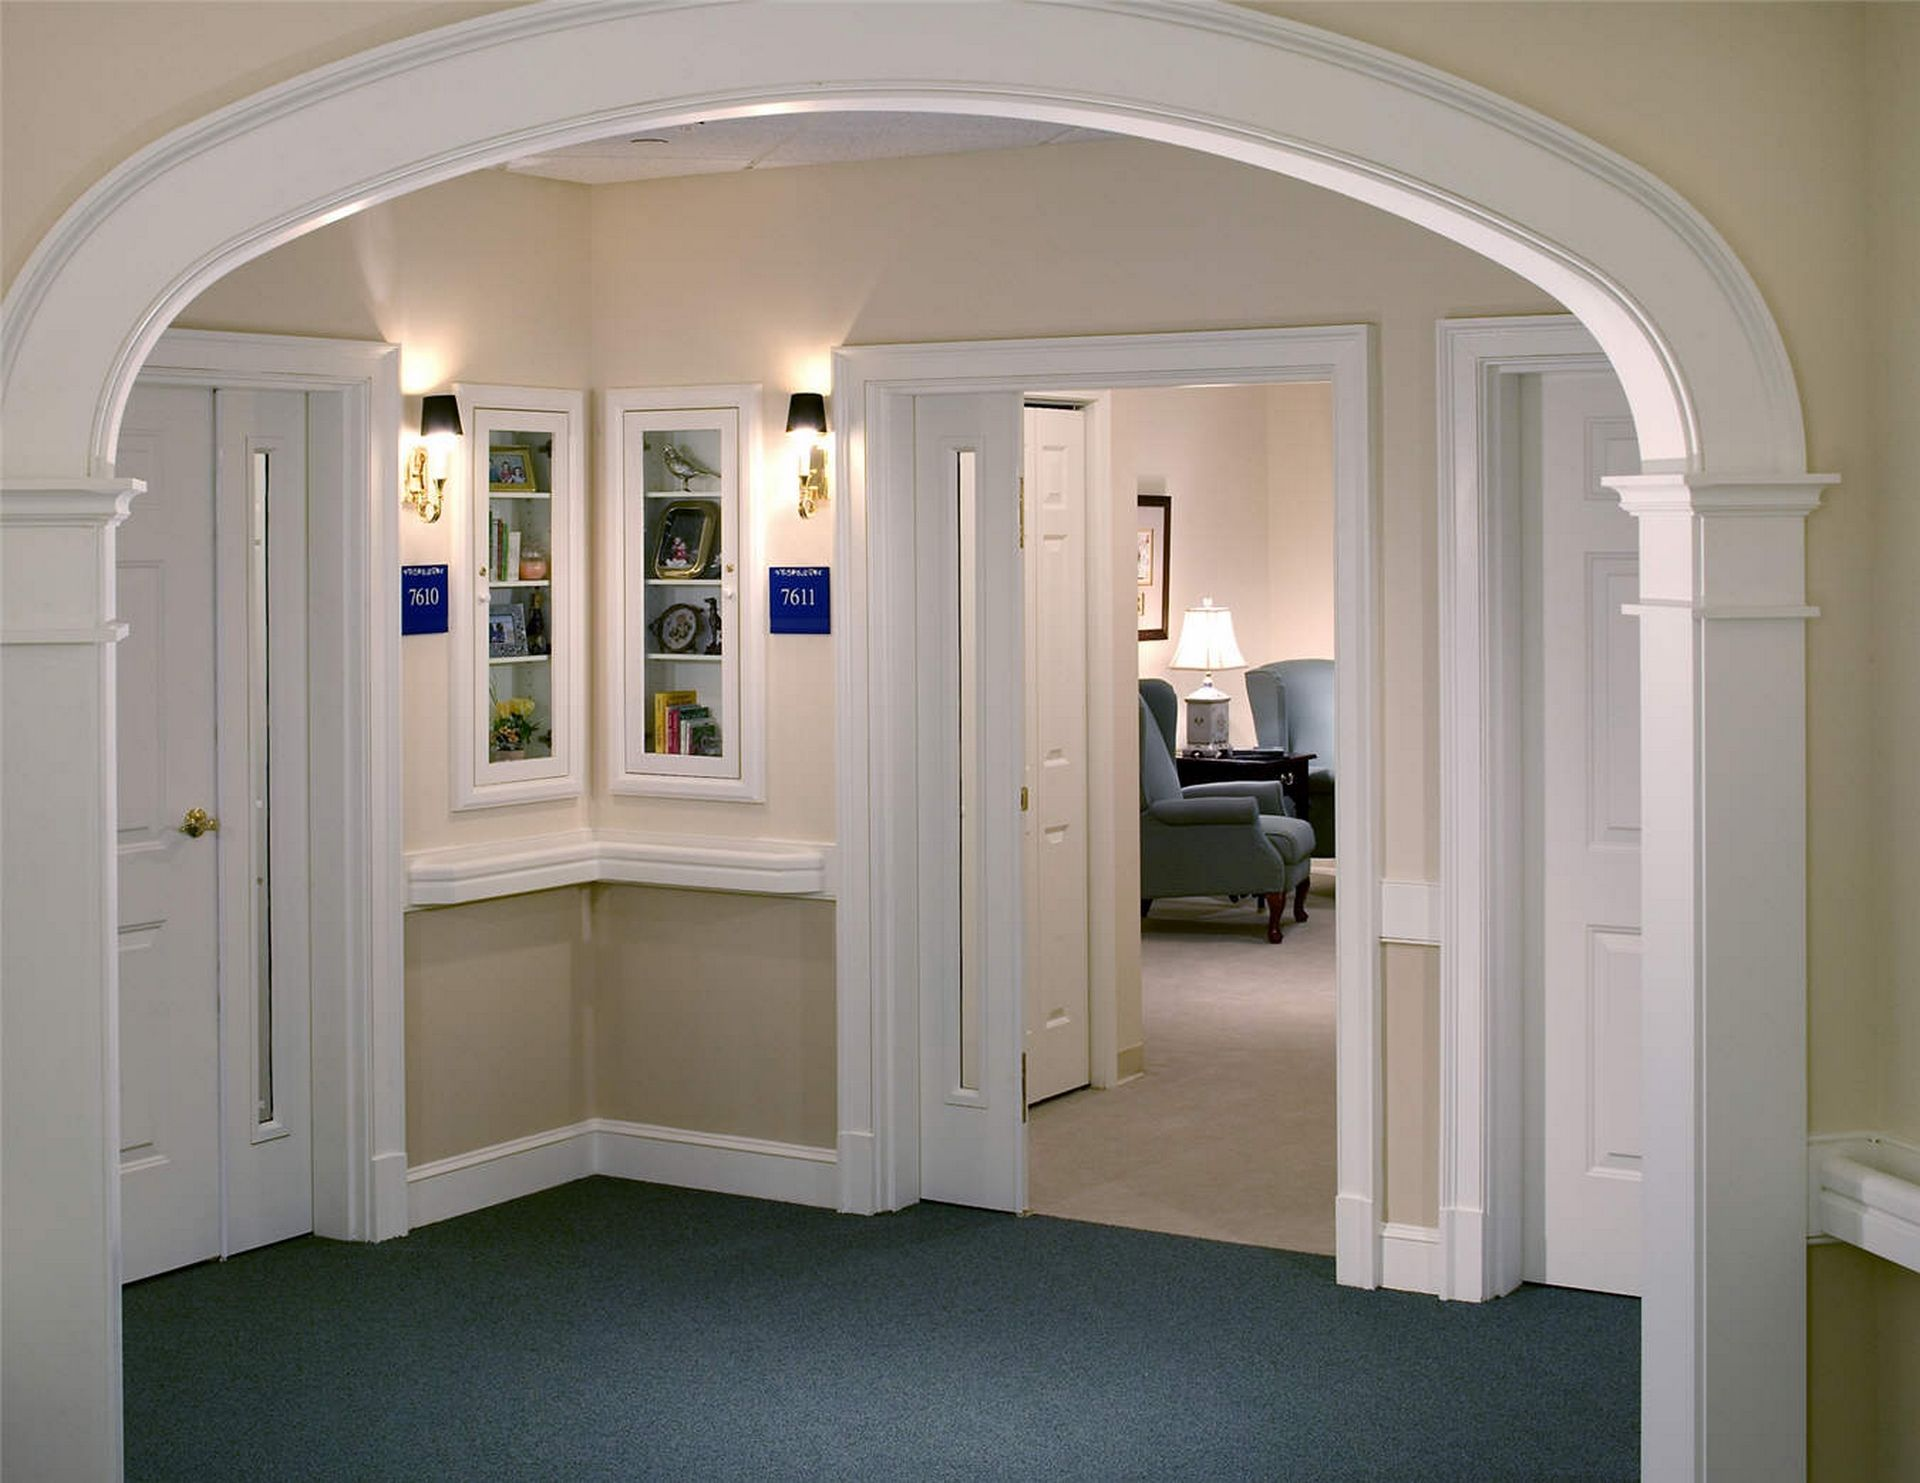 Westminster Canterbury Richmond Memory Care THW Design Senior Living